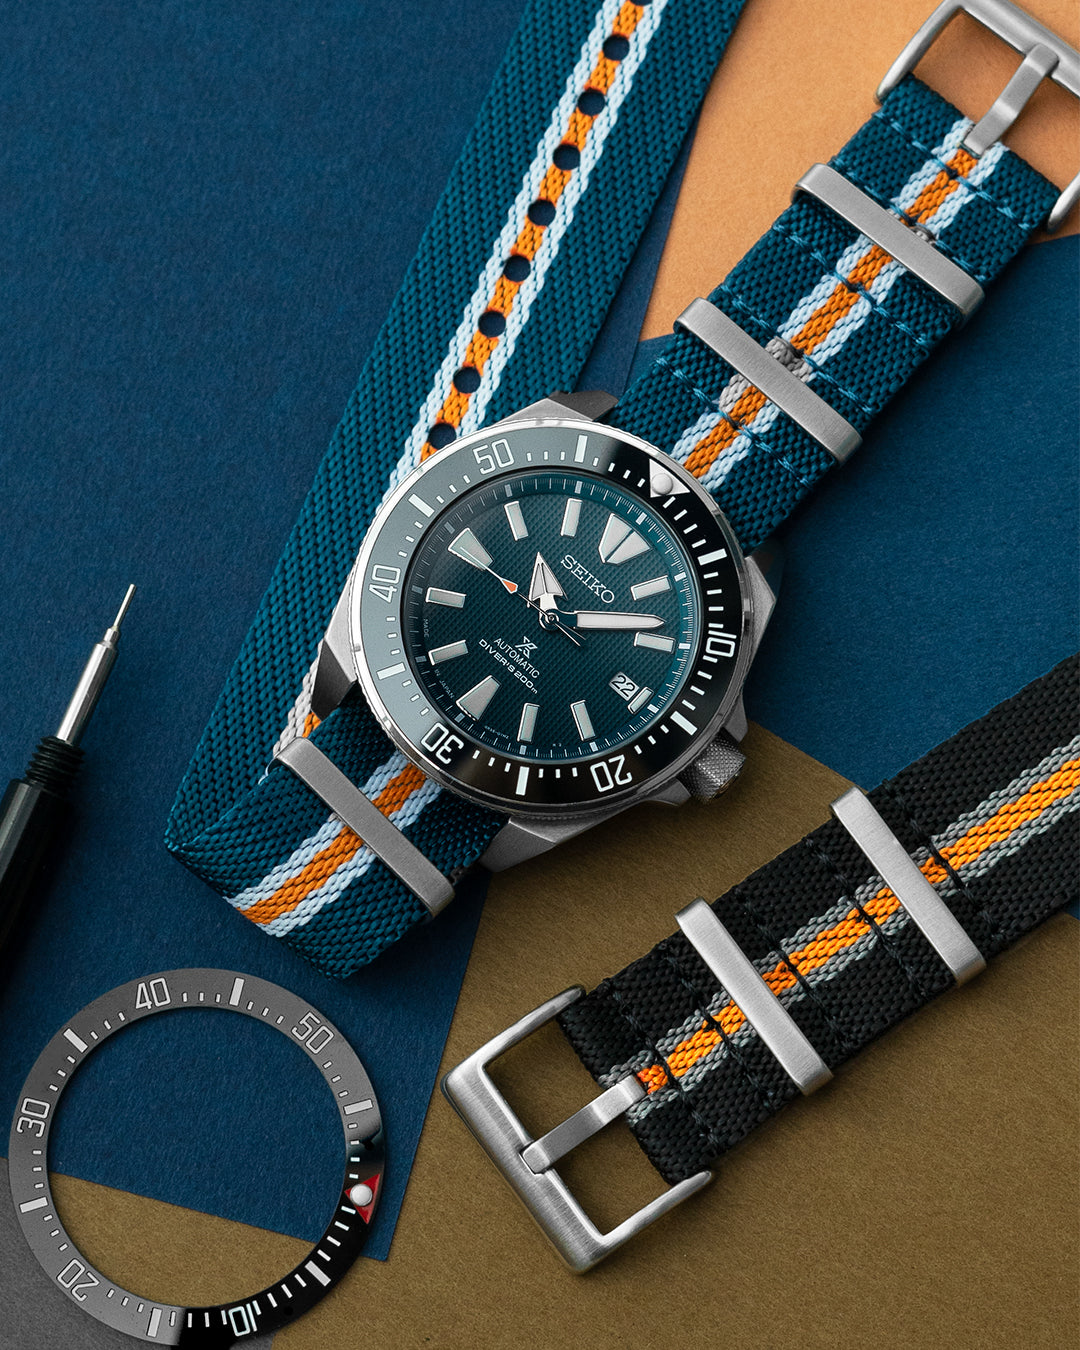 NATO M II - Monte Carlo (Blue/Orange/White)